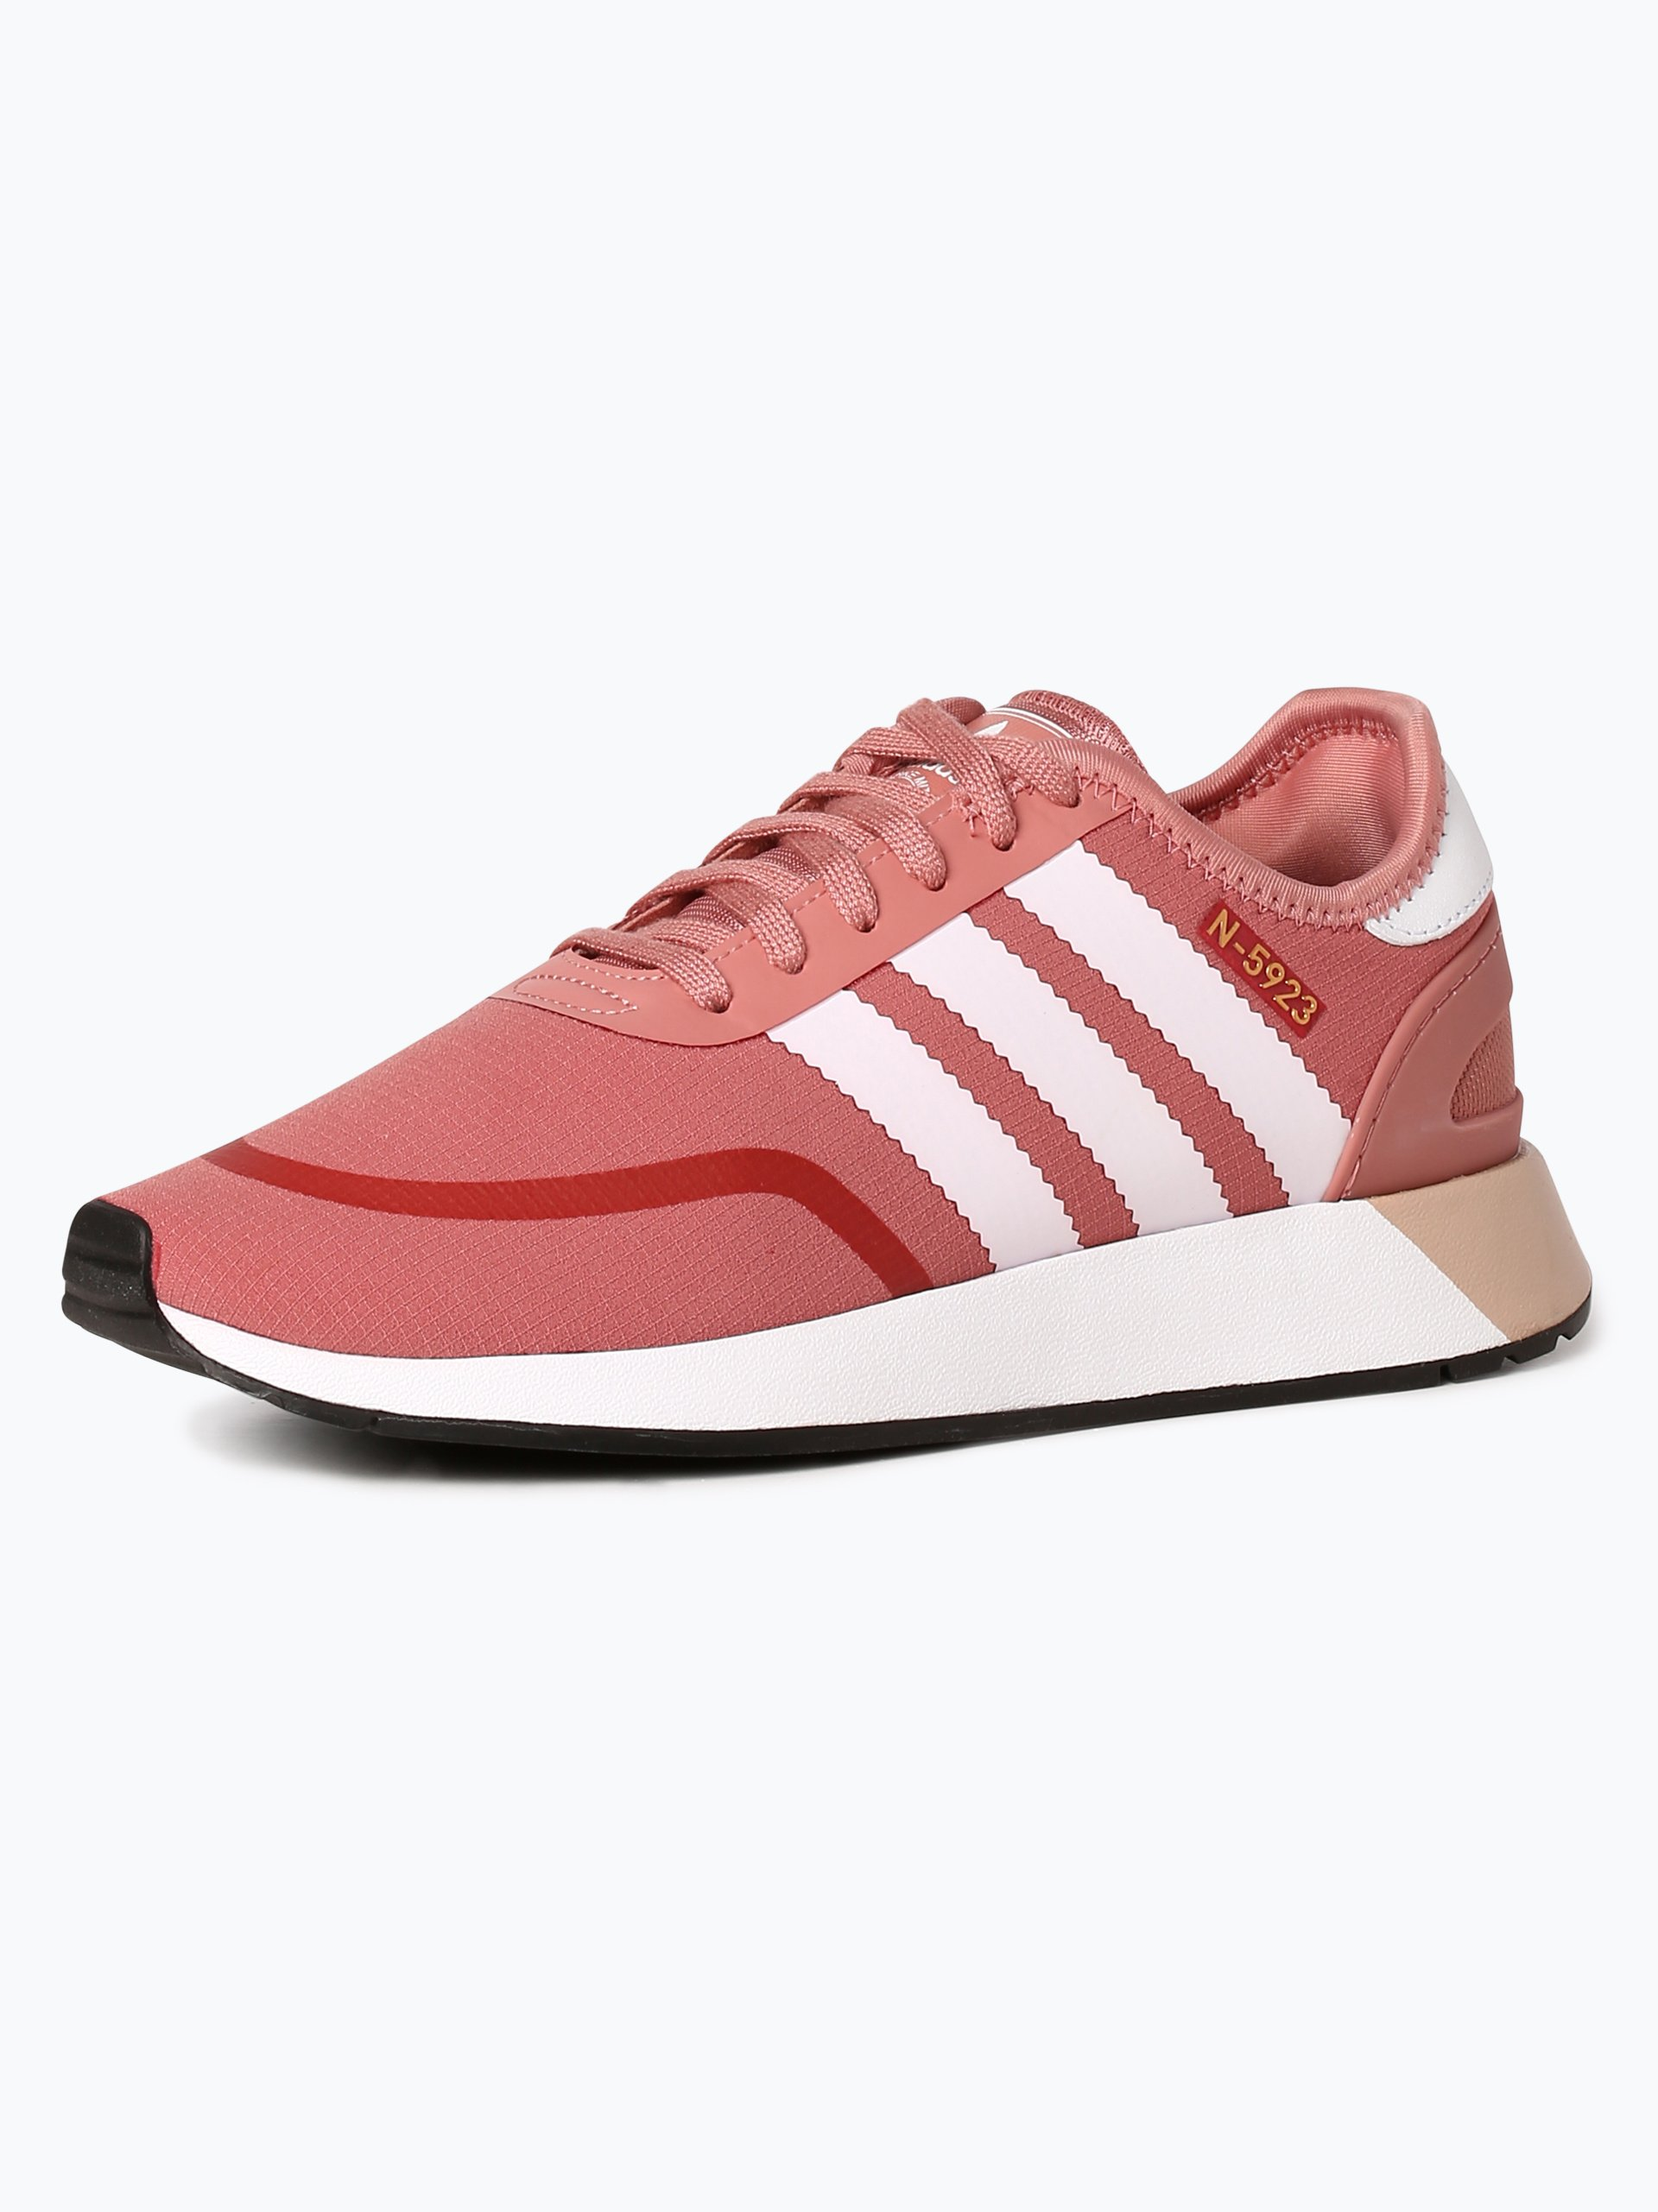 adidas Originals Damen Sneaker - N-5923